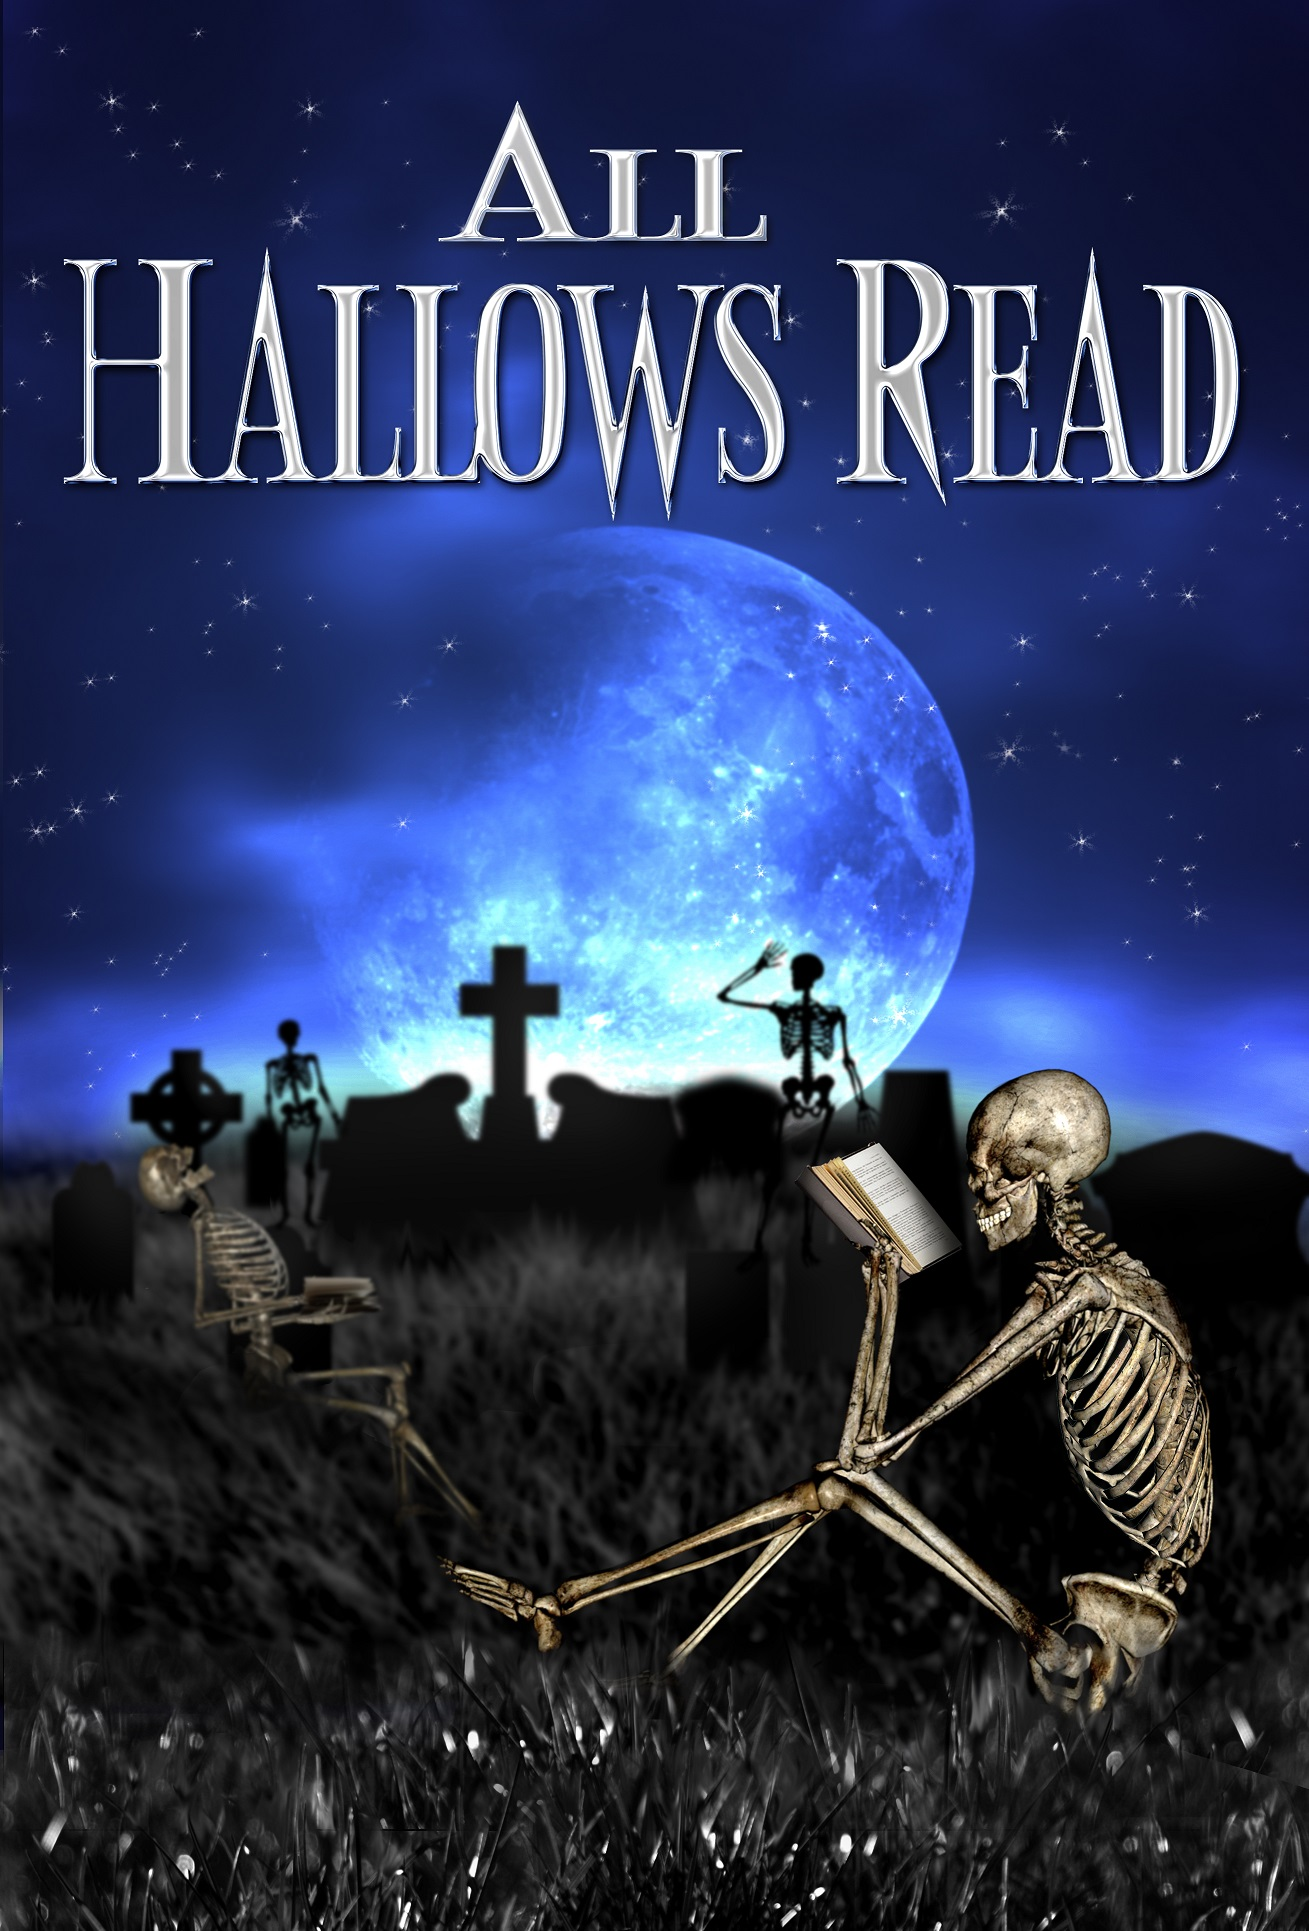 graveyard all hallows read poster